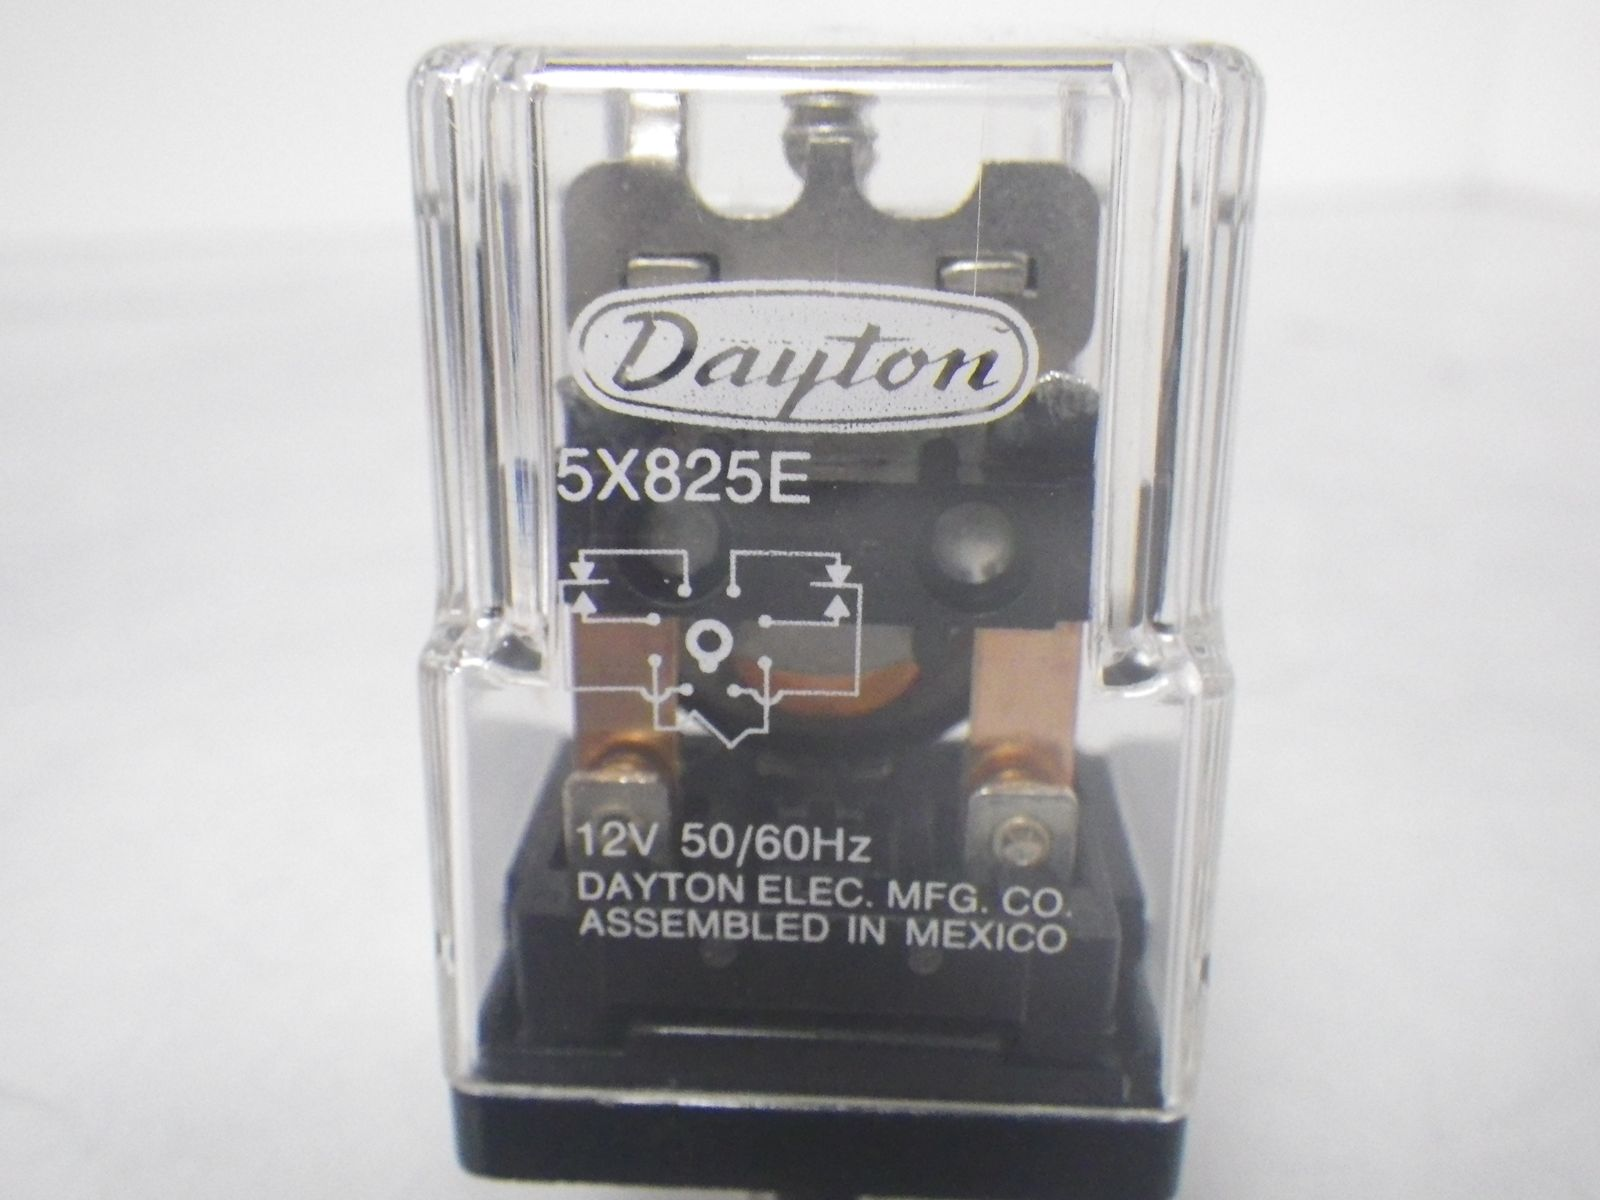 dayton 5x825e relay 12a 120vac 10amp 250vac 8pin  new open